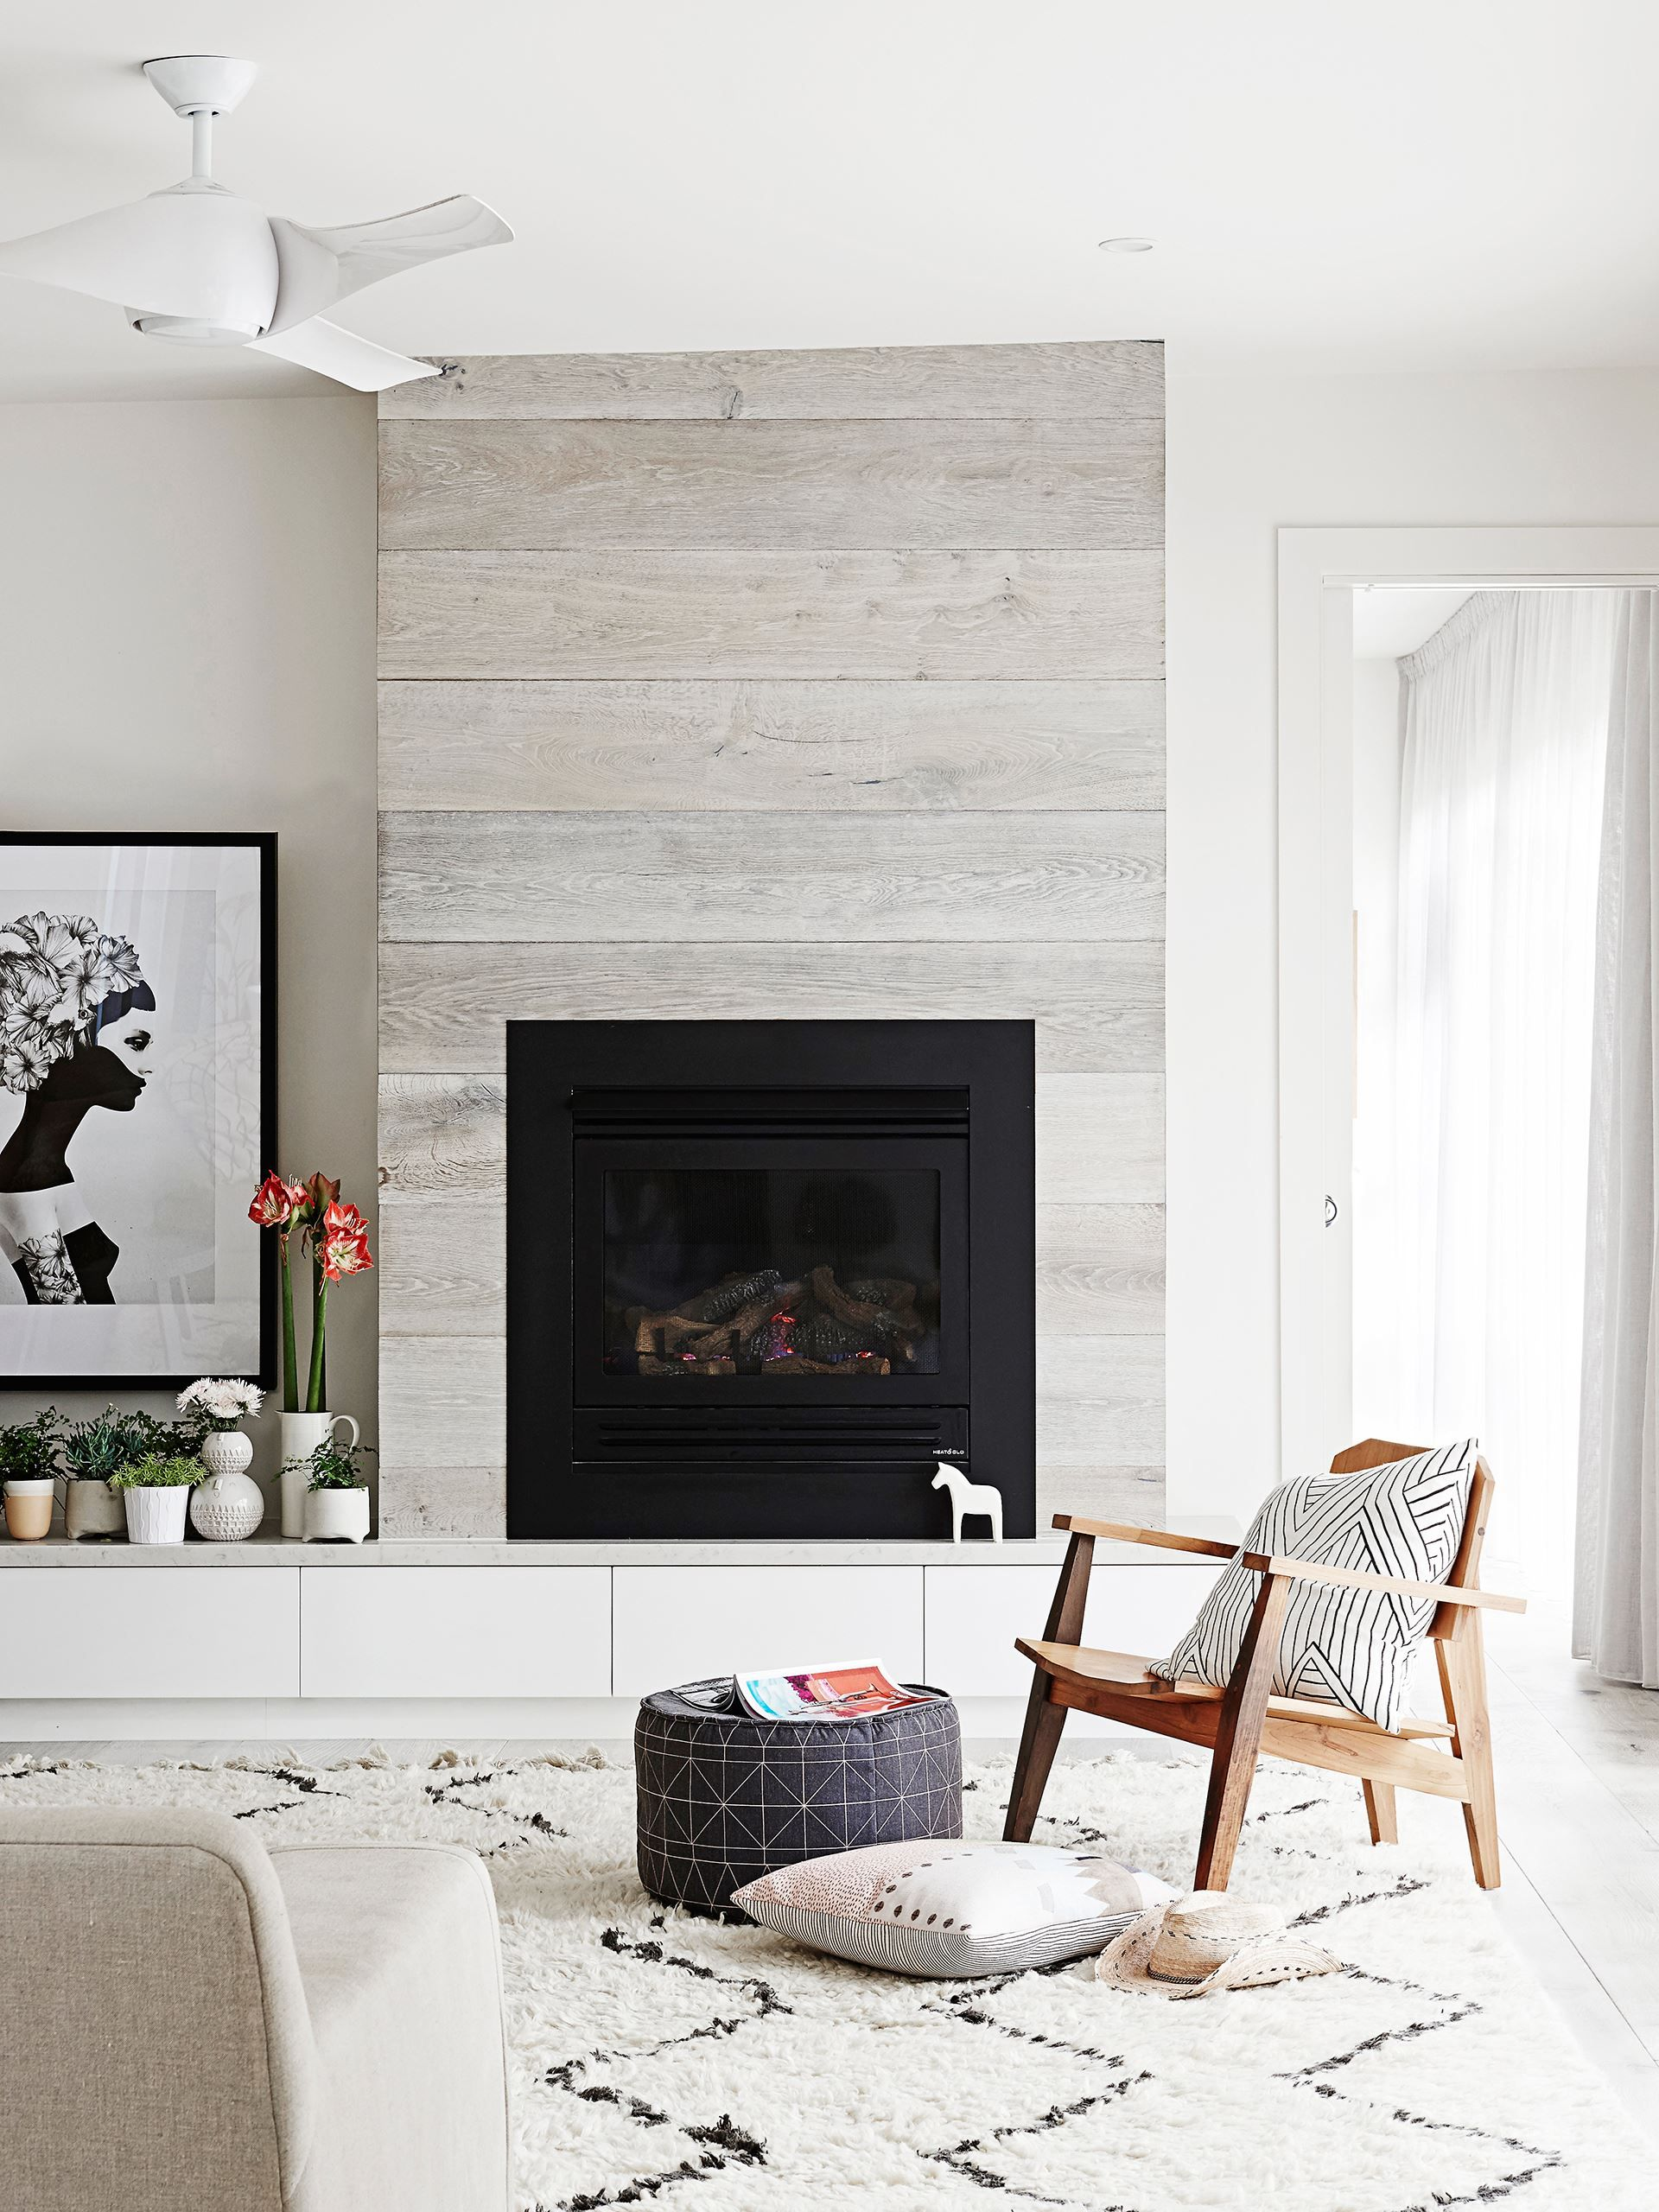 Our Favorite Fireplace Trends | Pinterest | Wood burning, Wool rug ...